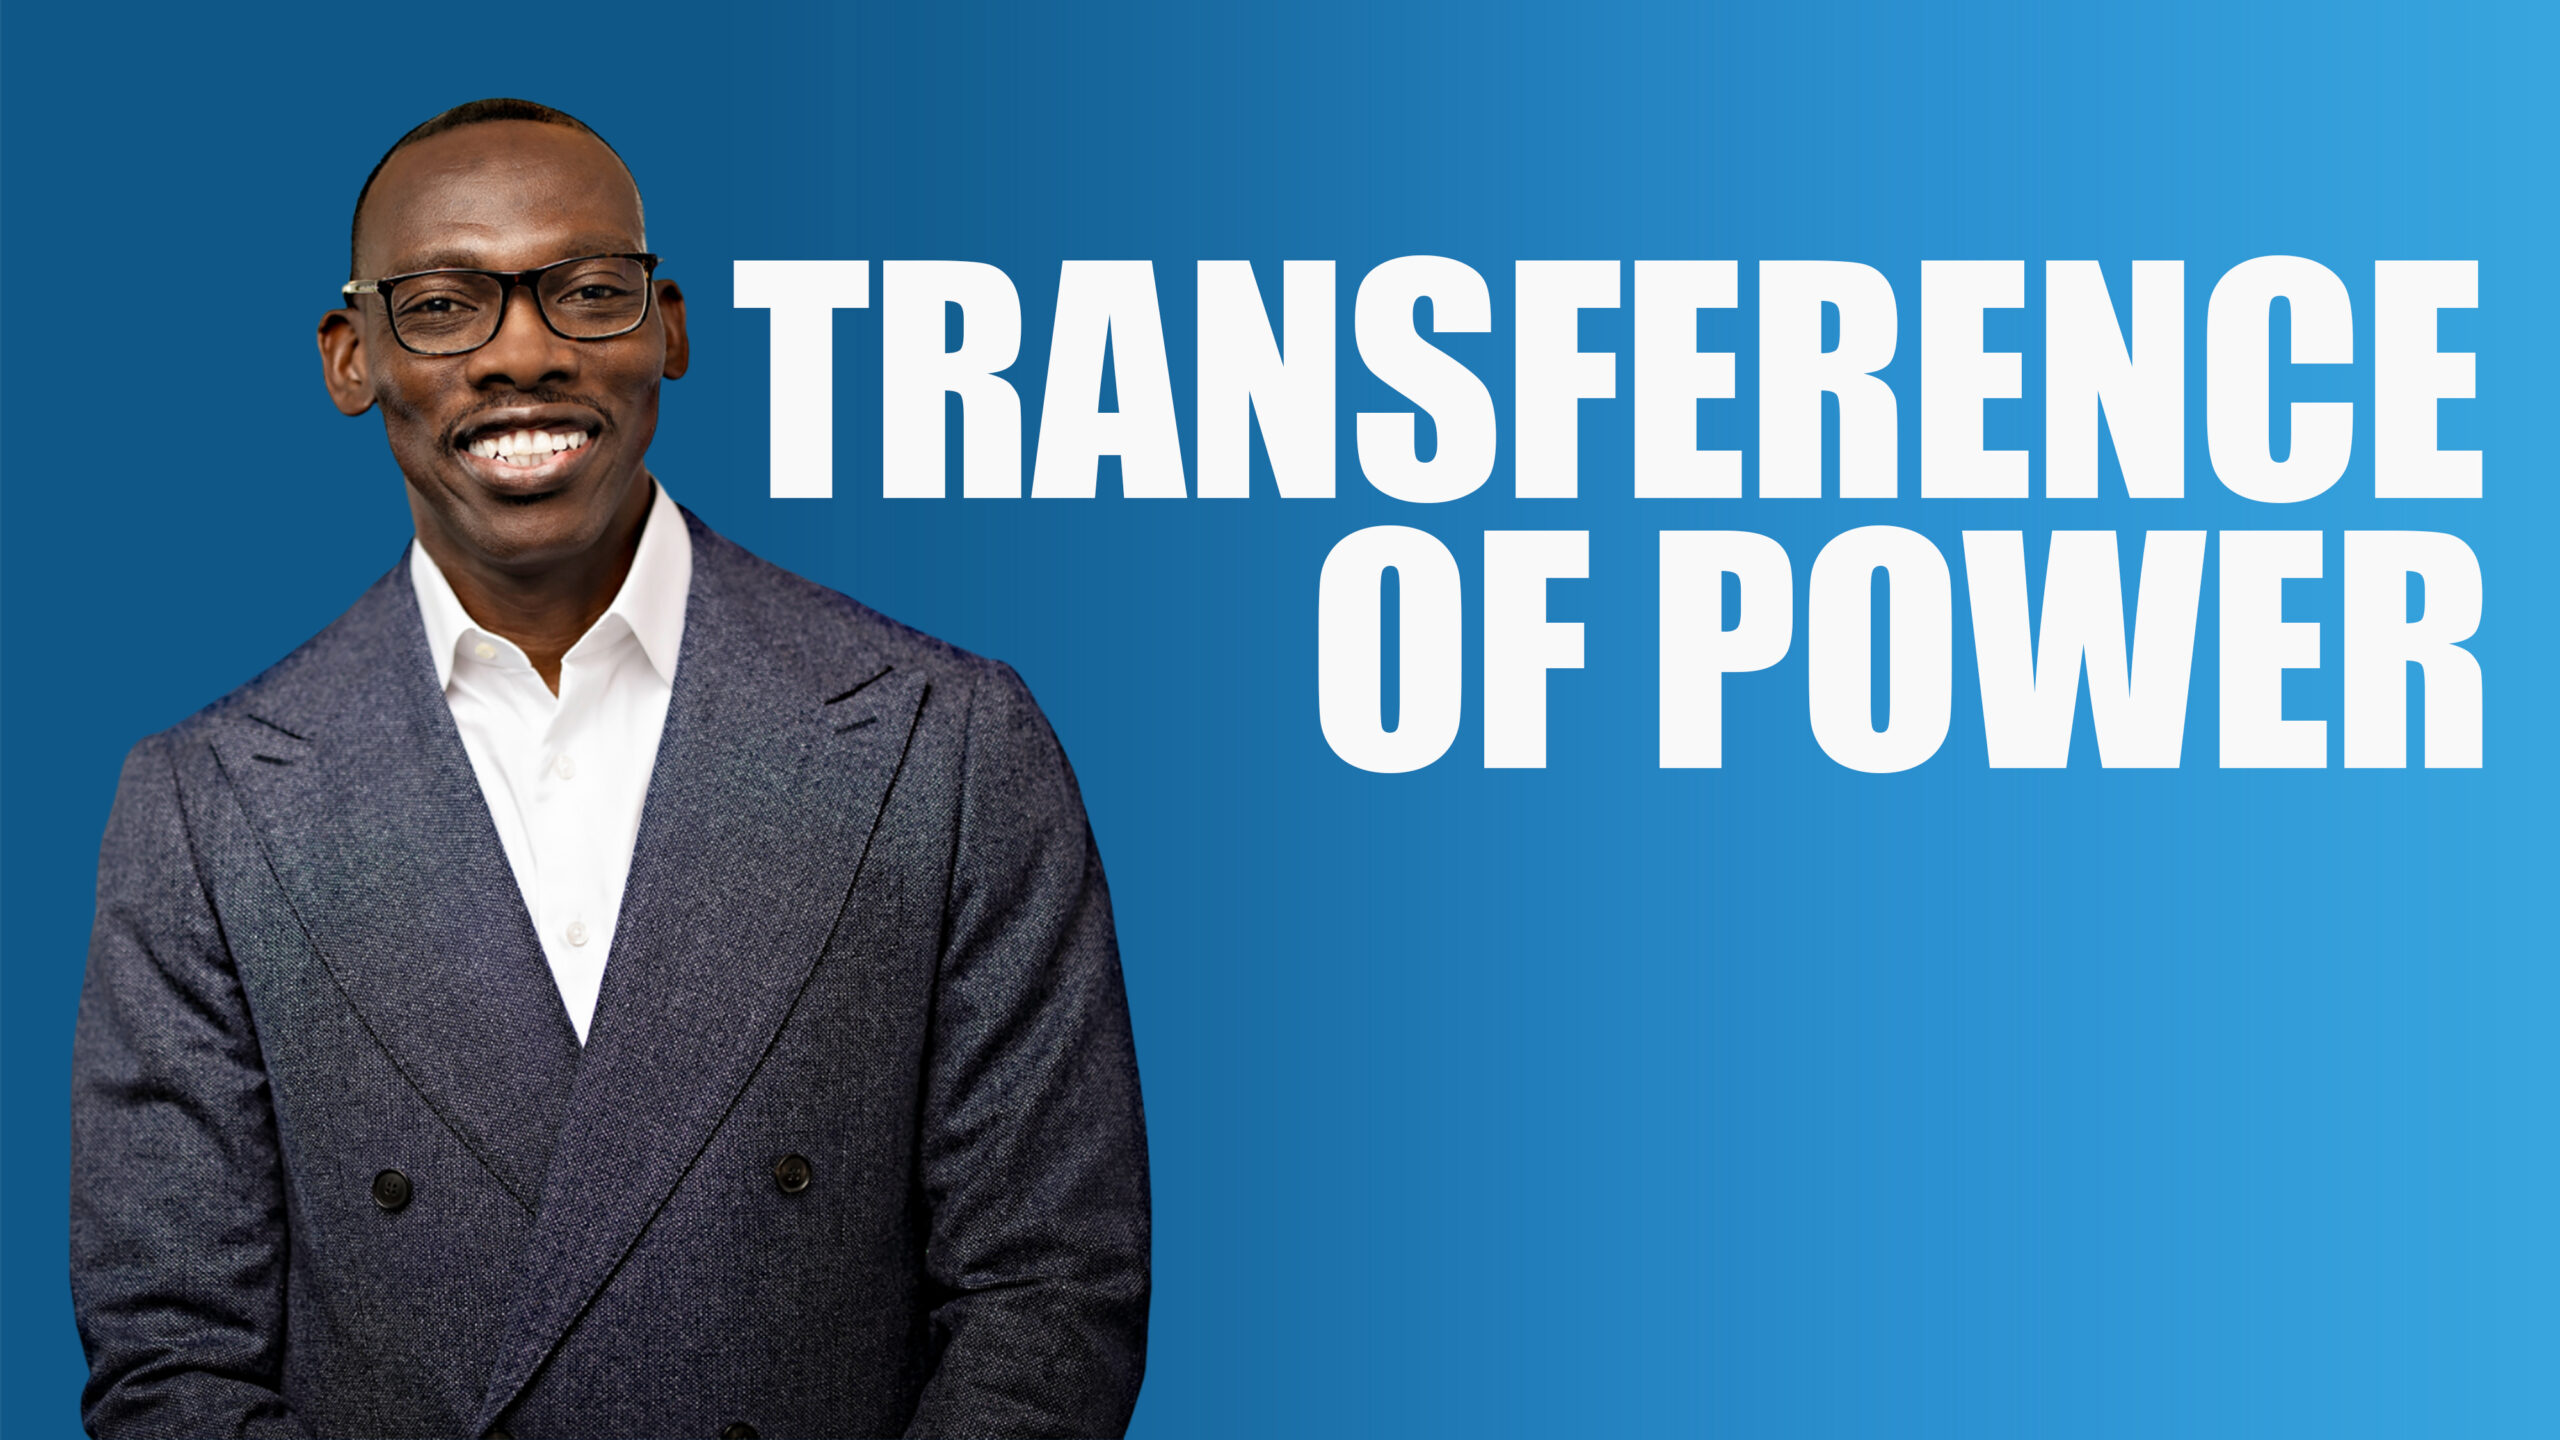 Transference Of Power